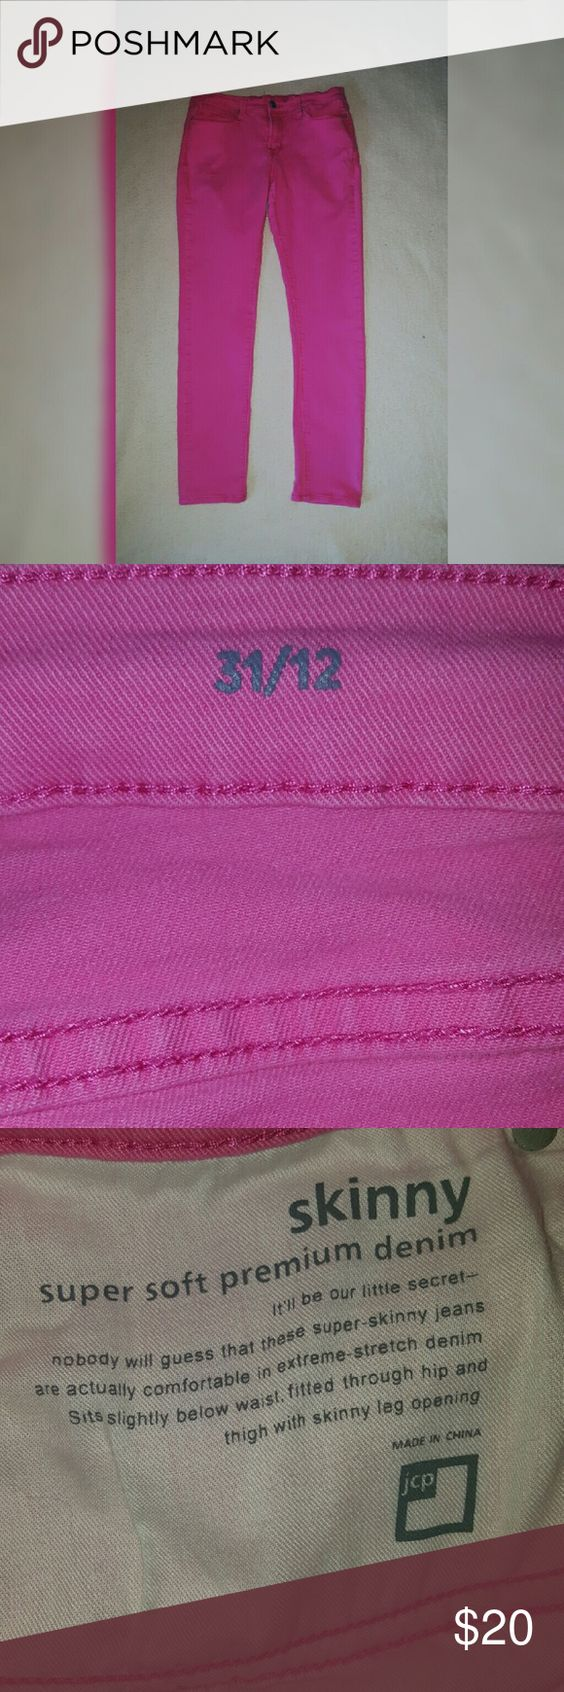 💕SALE💕Pink JC Penny Skinny Jeans Supper soft premium denim... extreme stretch denim... Sits below waist... Fitted through hip and thigh with skinny leg opening... Color is more true to the right color in pic 2... some pilling in crotch..GUC.... Feel free to ask for more pics and/or measurements! ✅Make an offer through OFFER button ONLY ✅Negotiations welcome ❌No trades ❌No PayPal jcpenney Pants Skinny